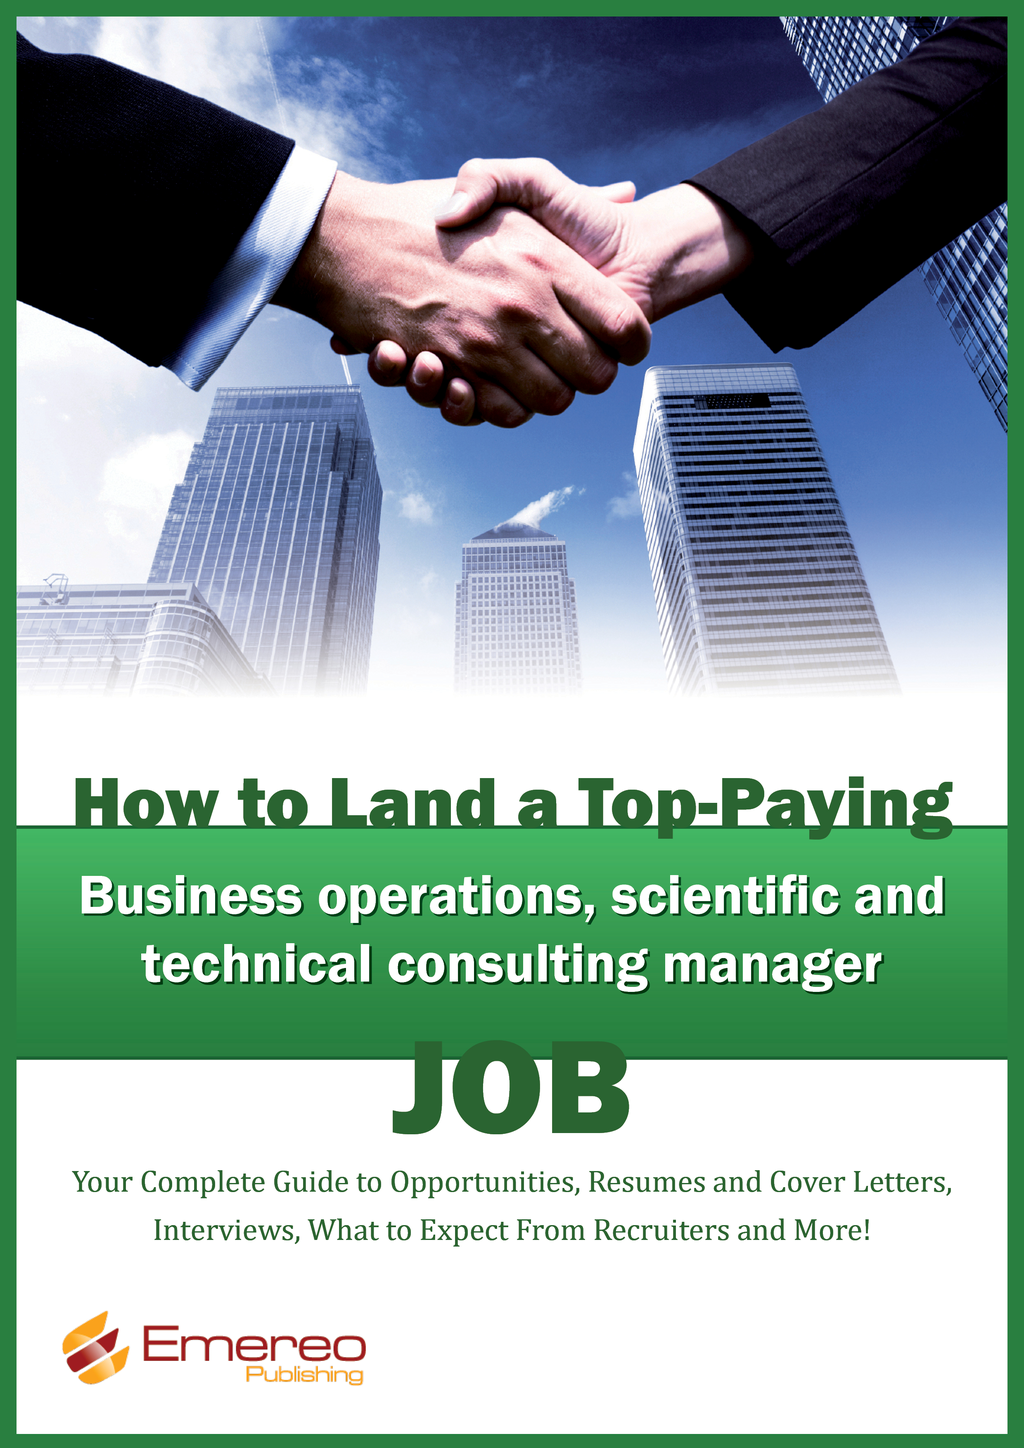 How to Land a Top-Paying Business Operations, Scientific and Technical Consulting Manager Job: Your Complete Guide to Opportunities, Resumes and Cover Letters, Interviews, Salaries, Promotions, What to Expect From Recruiters and More!